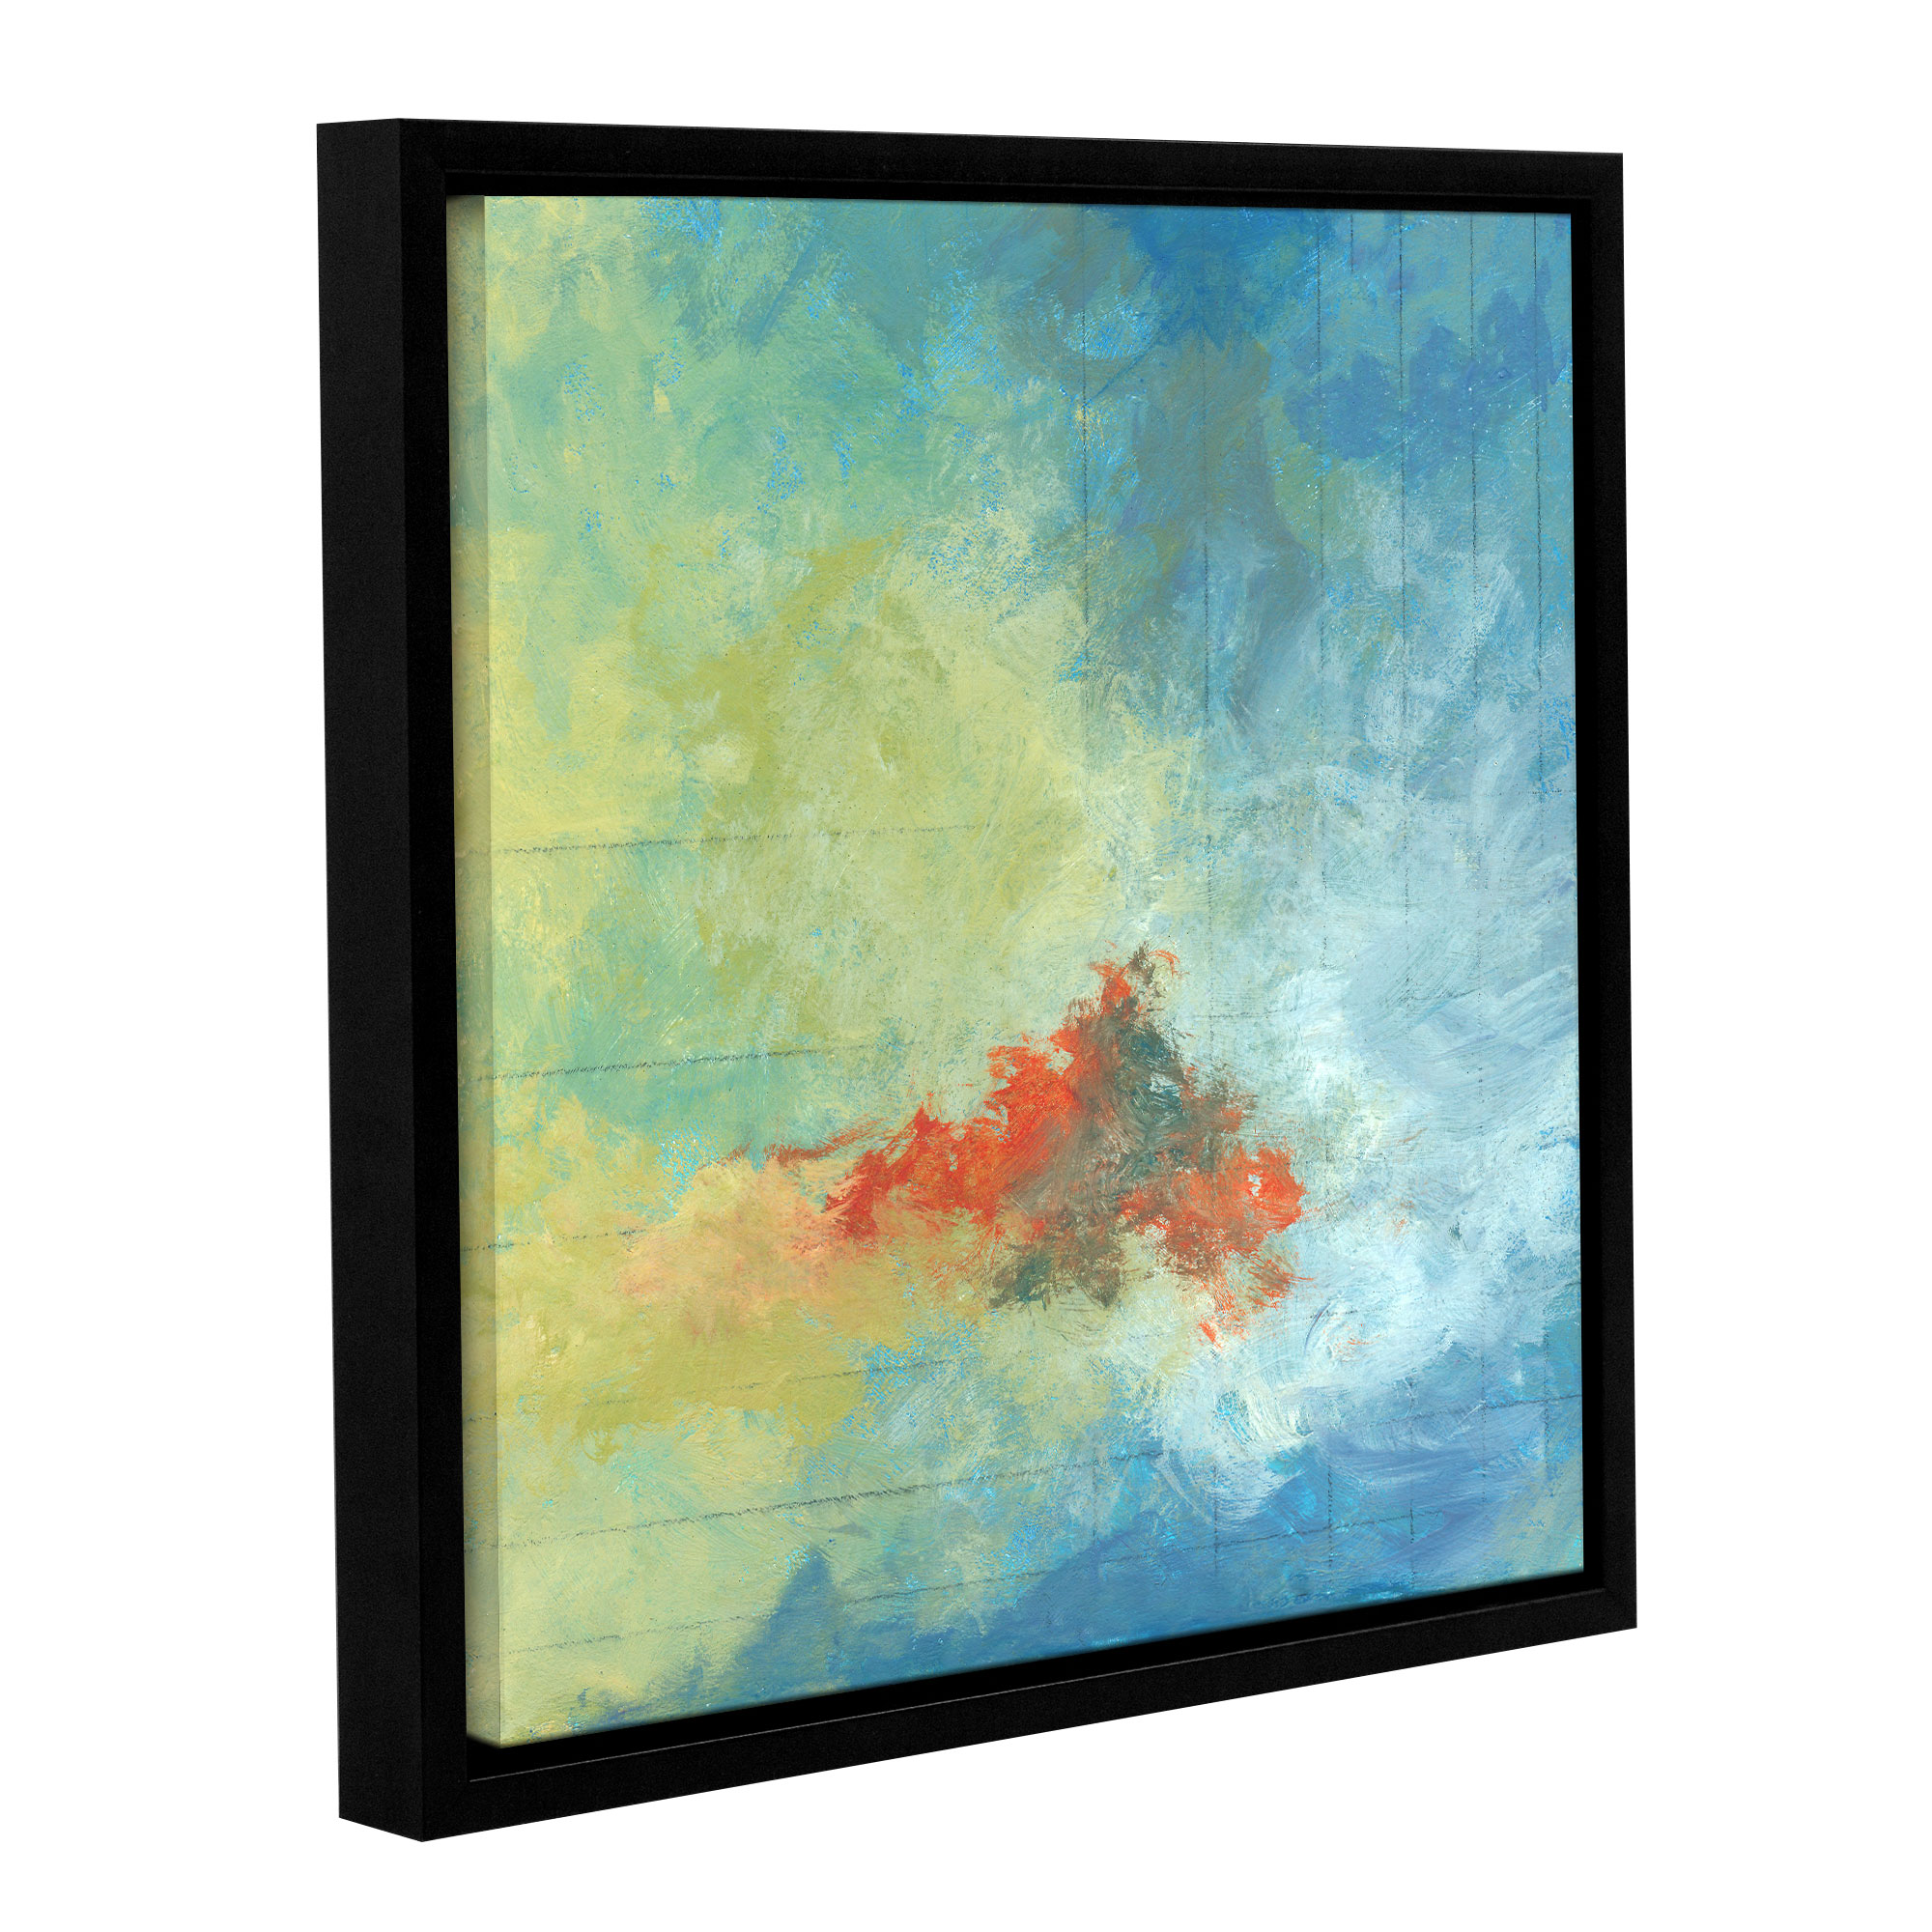 Earth and Lines II' Gallery Wrapped Floater-framed Canvas Art Print